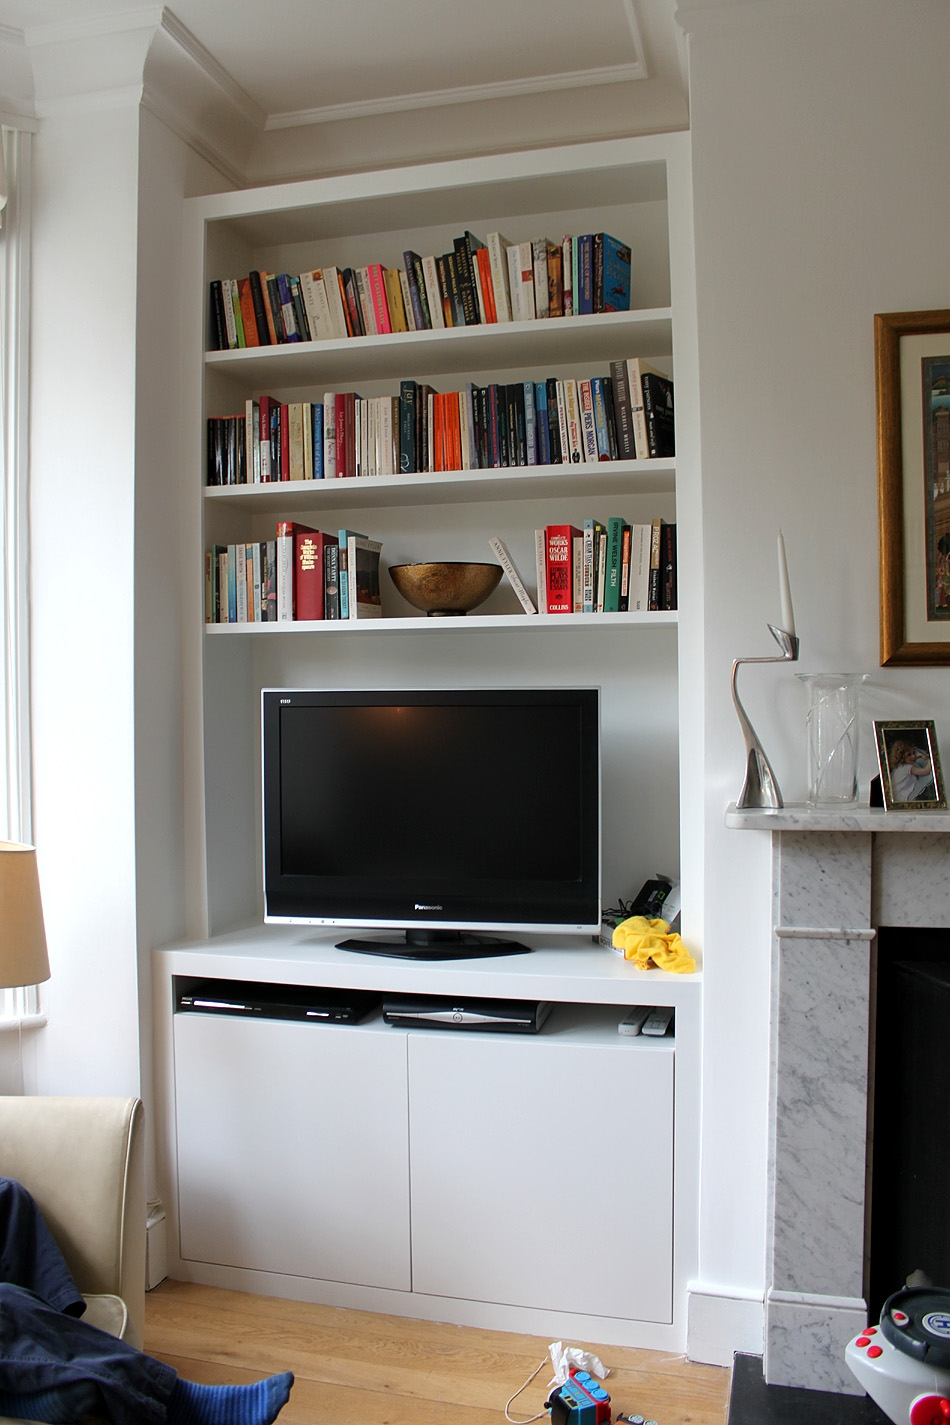 Fitted Wardrobes Bookcases Shelving Floating Shelves London With Bookcase With Tv Unit (View 7 of 15)